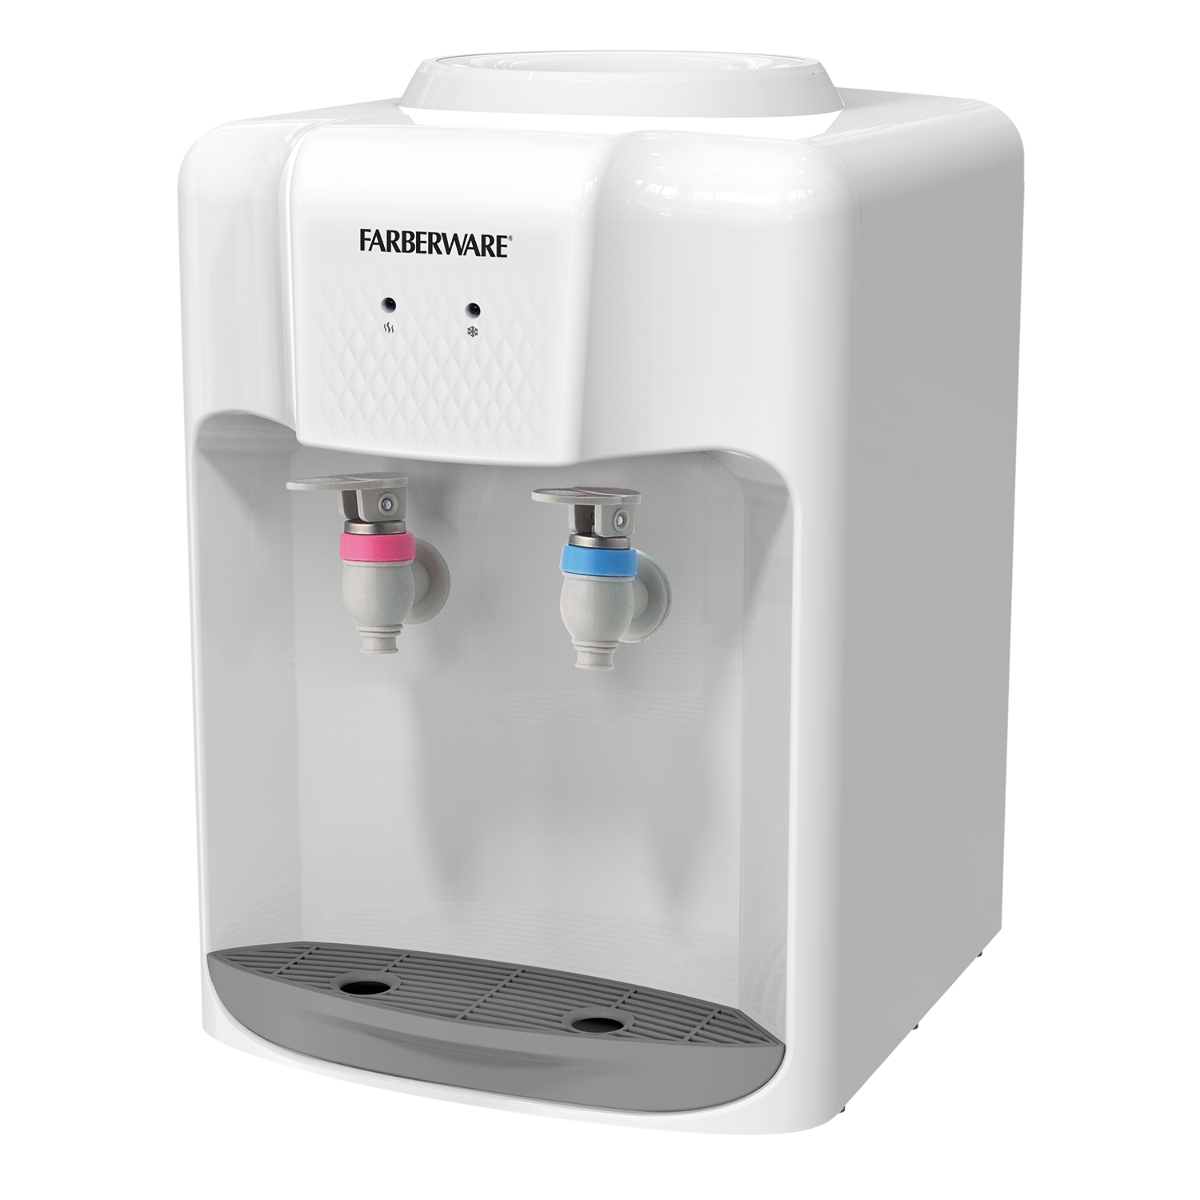 Countertop Instant Hot Water Dispenser Farberware Fw Wd211 3 5 Gallon Countertop Hot And Cold Water Cooler Dispenser White